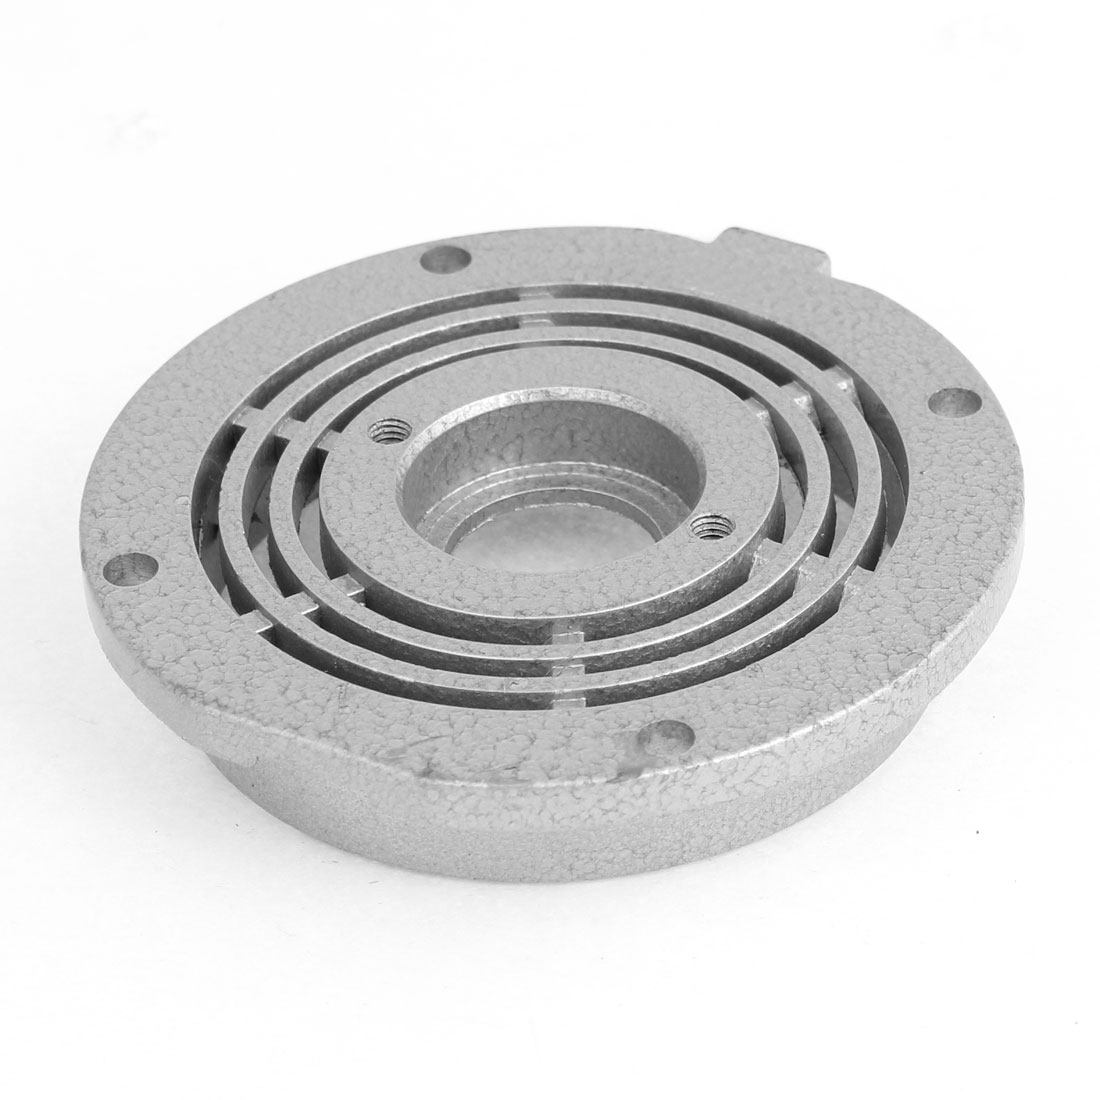 Silver-Tone-Electric-Router-Aluminum-Bearing-Seat-for-Makita-3601